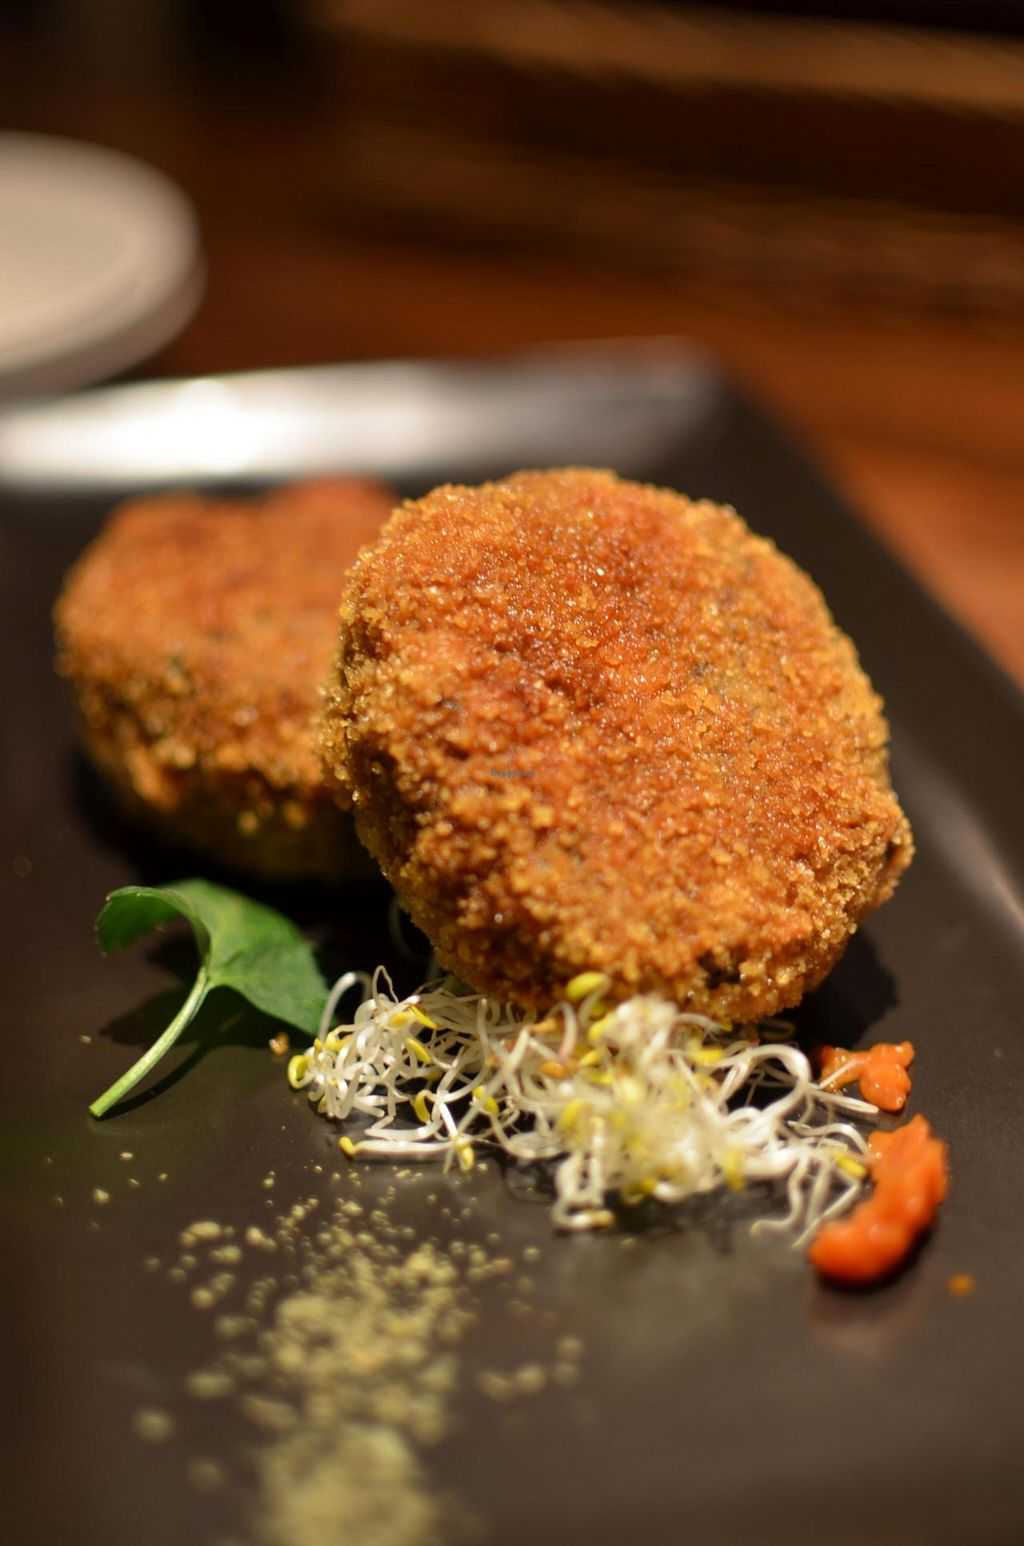 """Photo of Organic Plus  by <a href=""""/members/profile/chocoholicPhilosophe"""">chocoholicPhilosophe</a> <br/>Rice croquette <br/> March 19, 2015  - <a href='/contact/abuse/image/45393/96204'>Report</a>"""